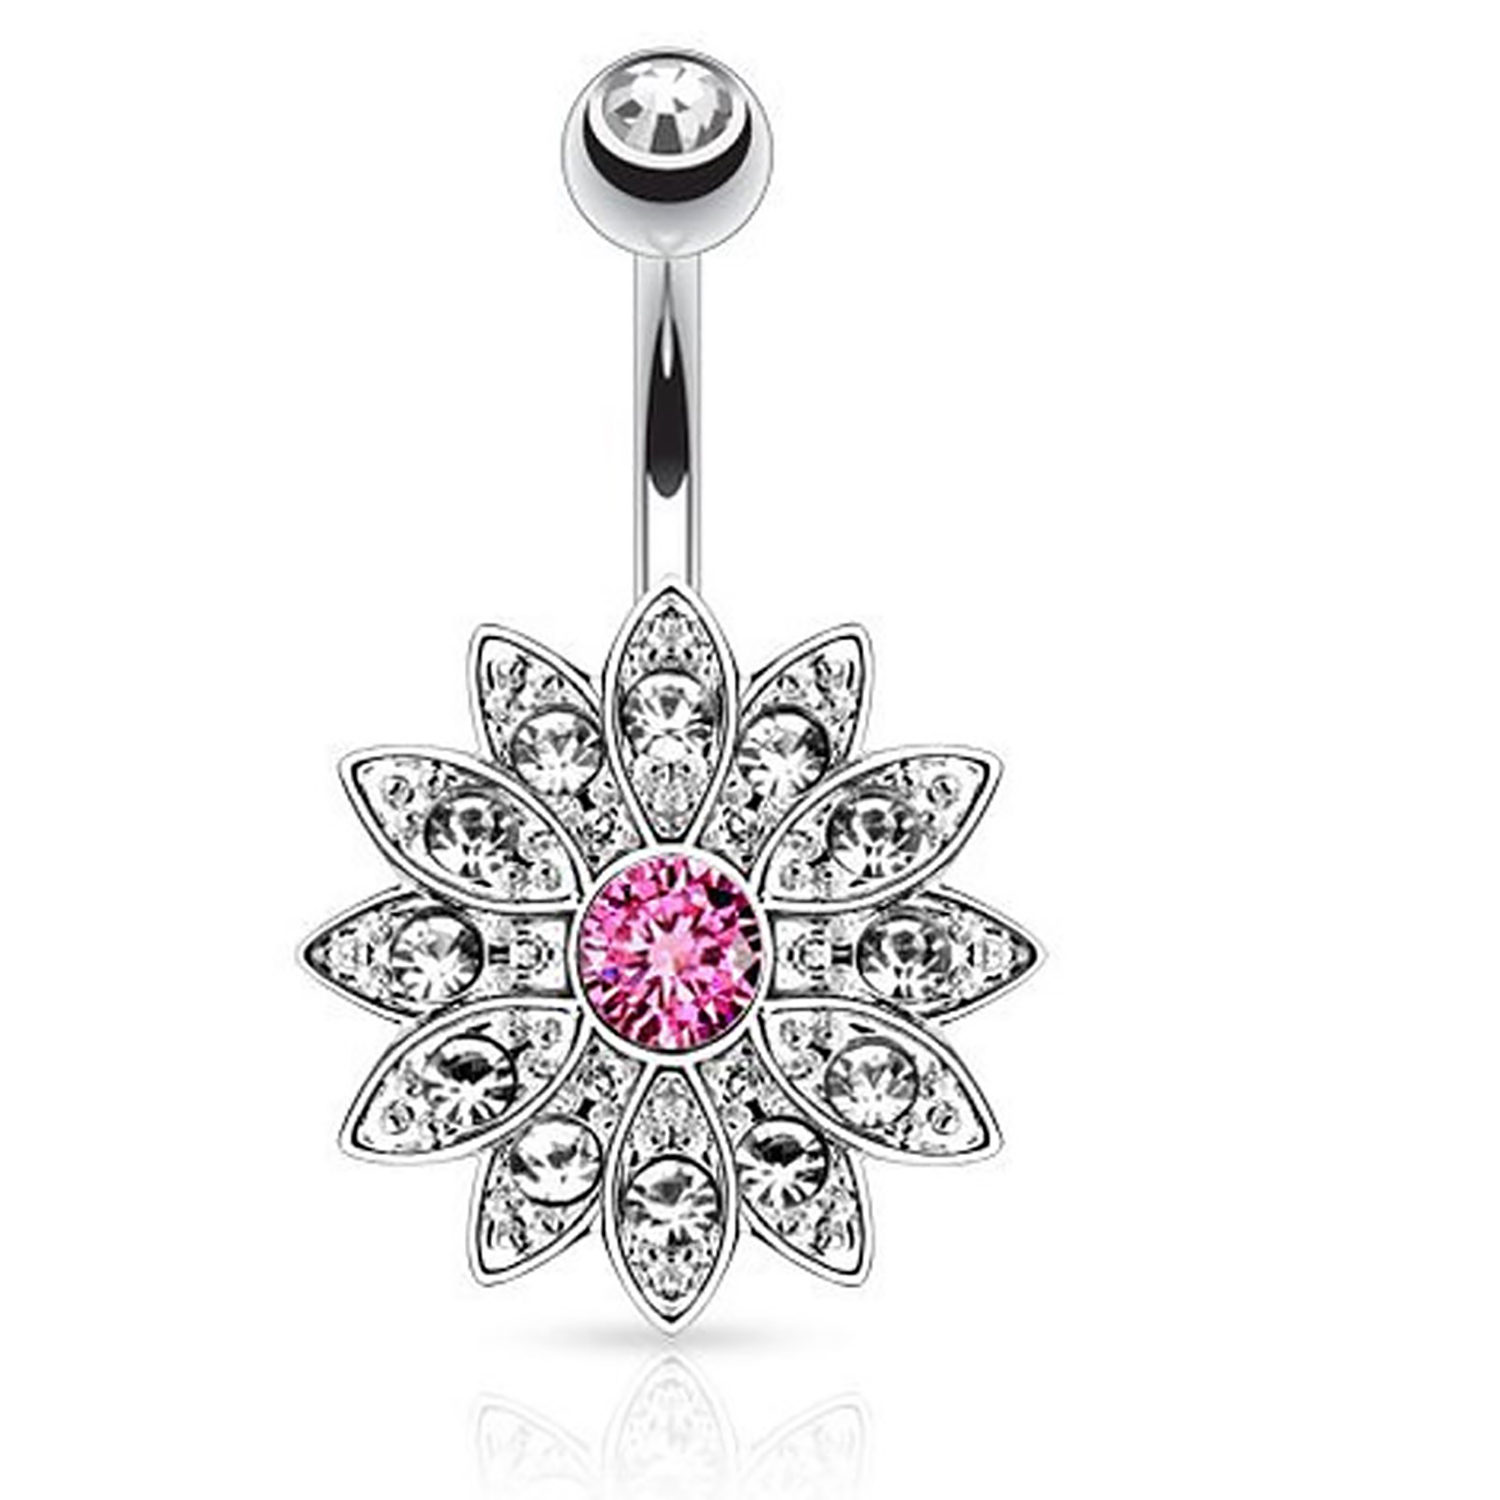 Dazzling Crystal Sunflower Petal Navel Piercing Silver